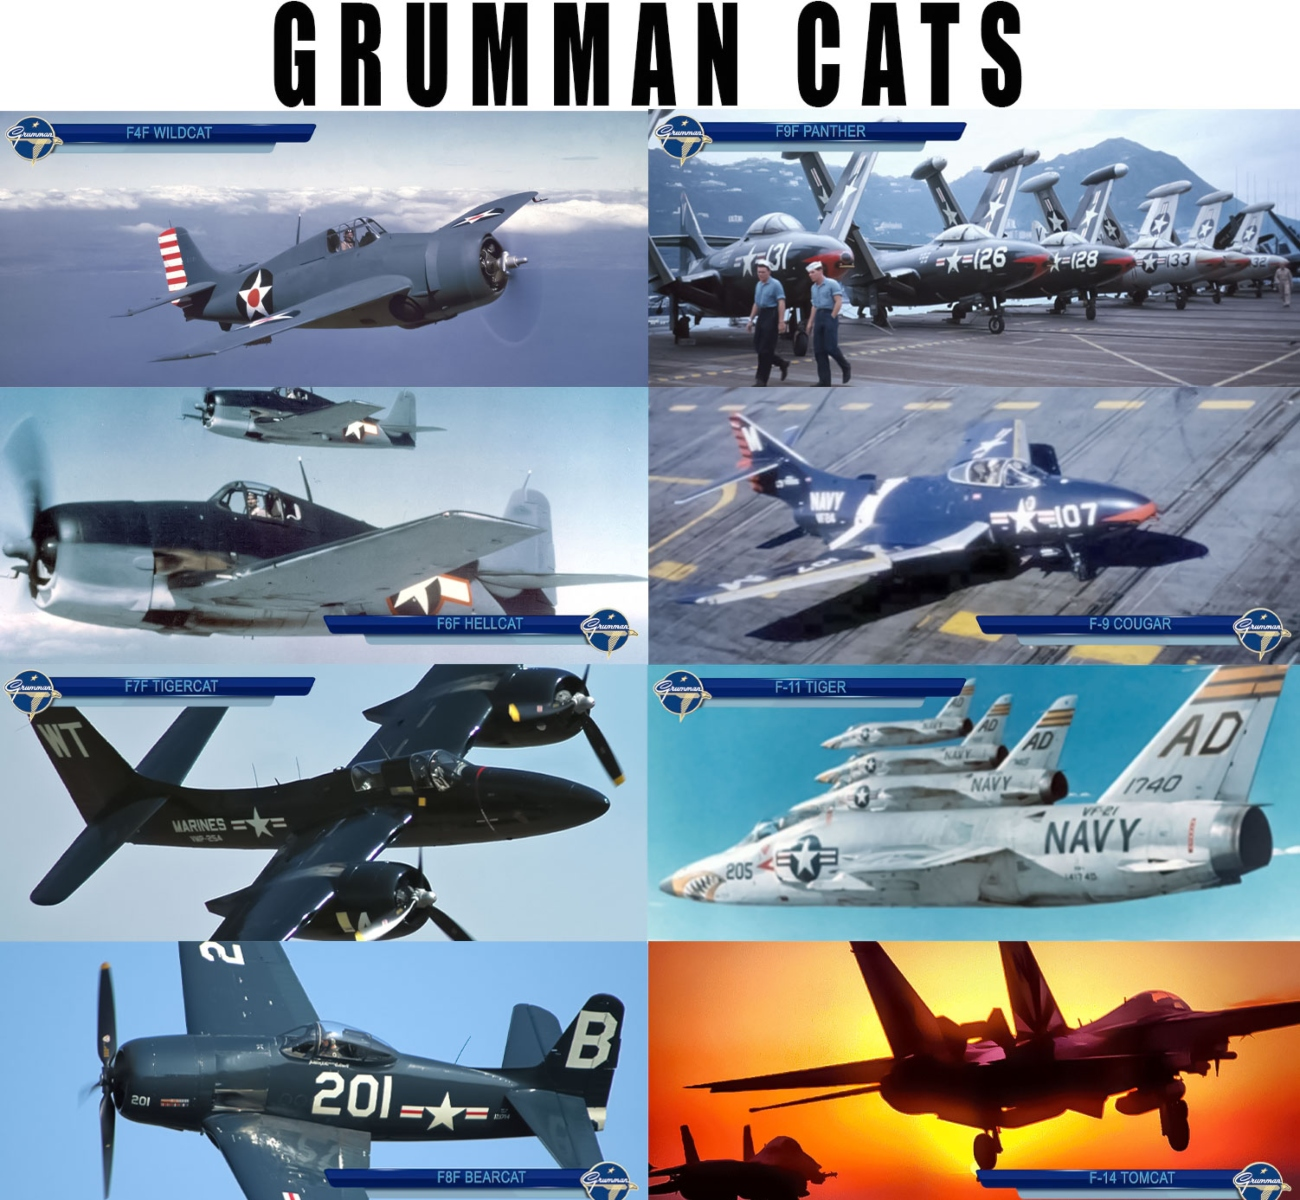 The Story of the Last Aviator to fly All the Grumman Cats